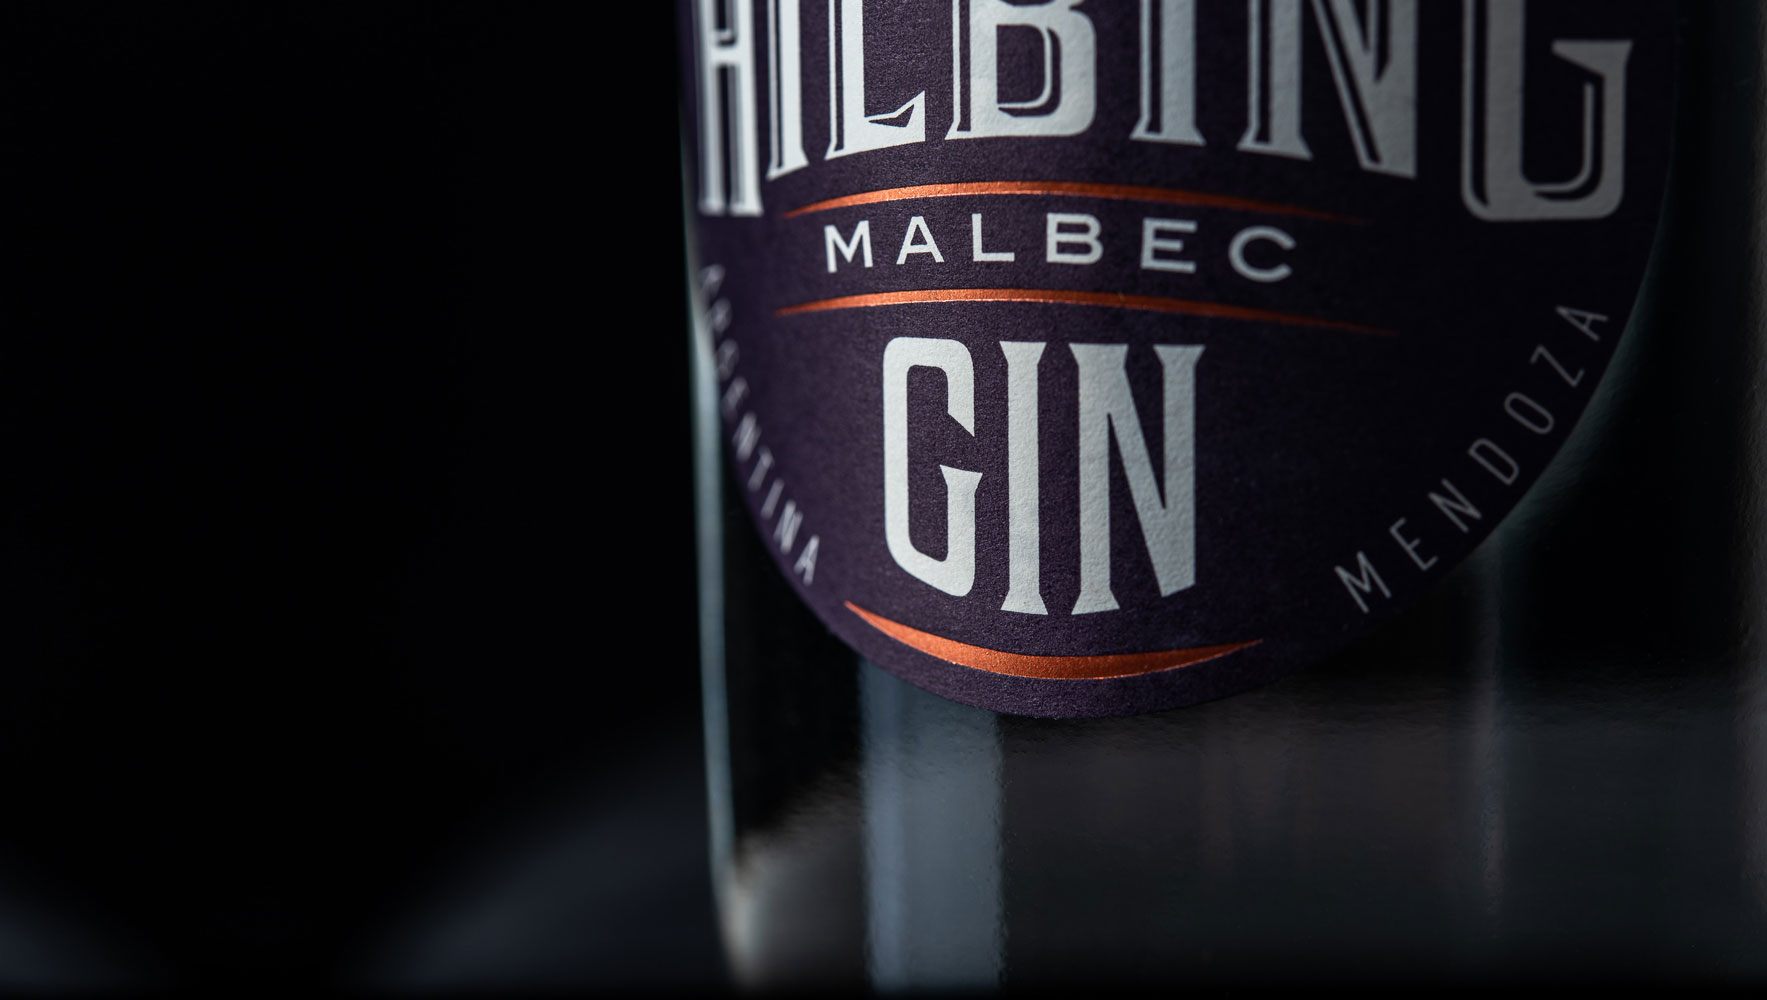 You are currently viewing Hilbing Malbec Gin